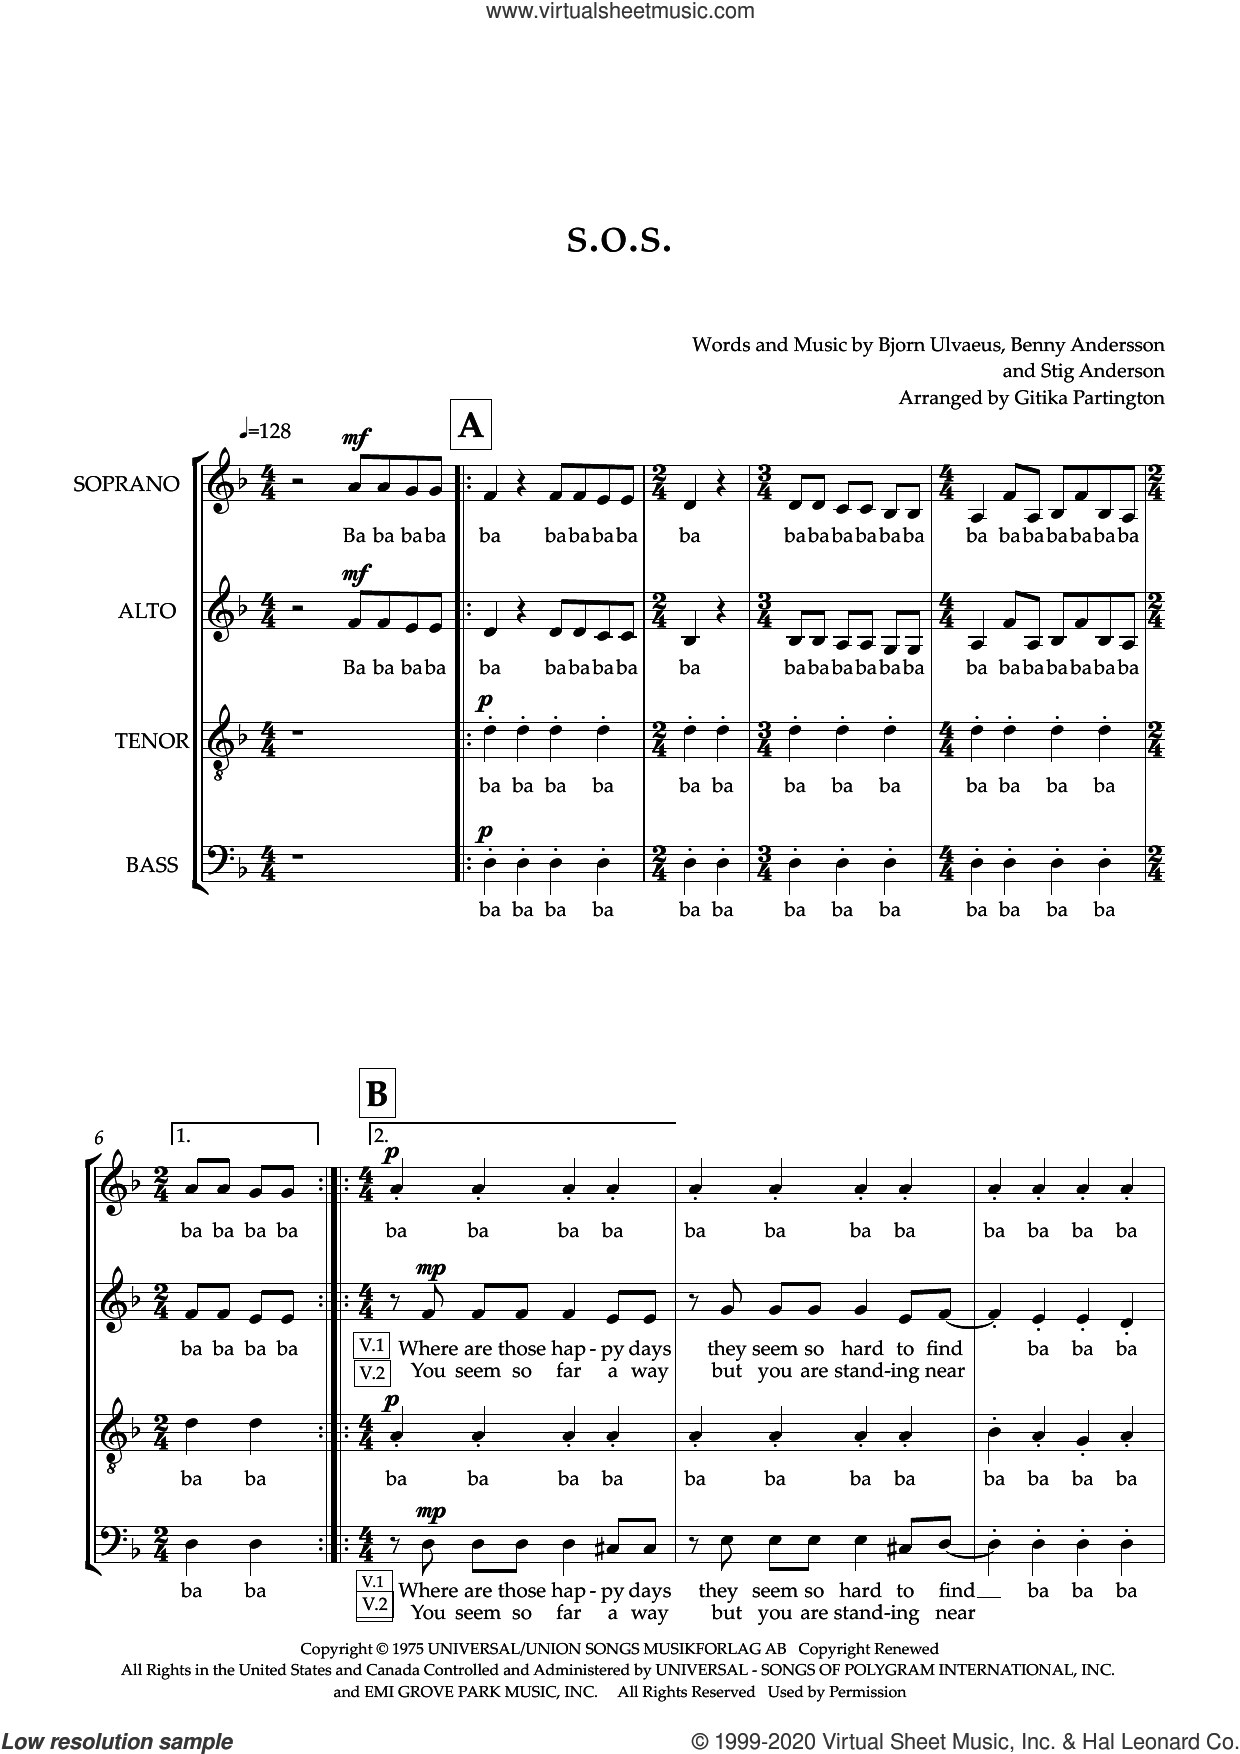 S.O.S. (arr. Gitika Partington) sheet music for choir (SATB: soprano, alto, tenor, bass) by ABBA, Gitika Partington, Benny Andersson, Bjorn Ulvaeus and Stig Anderson, intermediate skill level